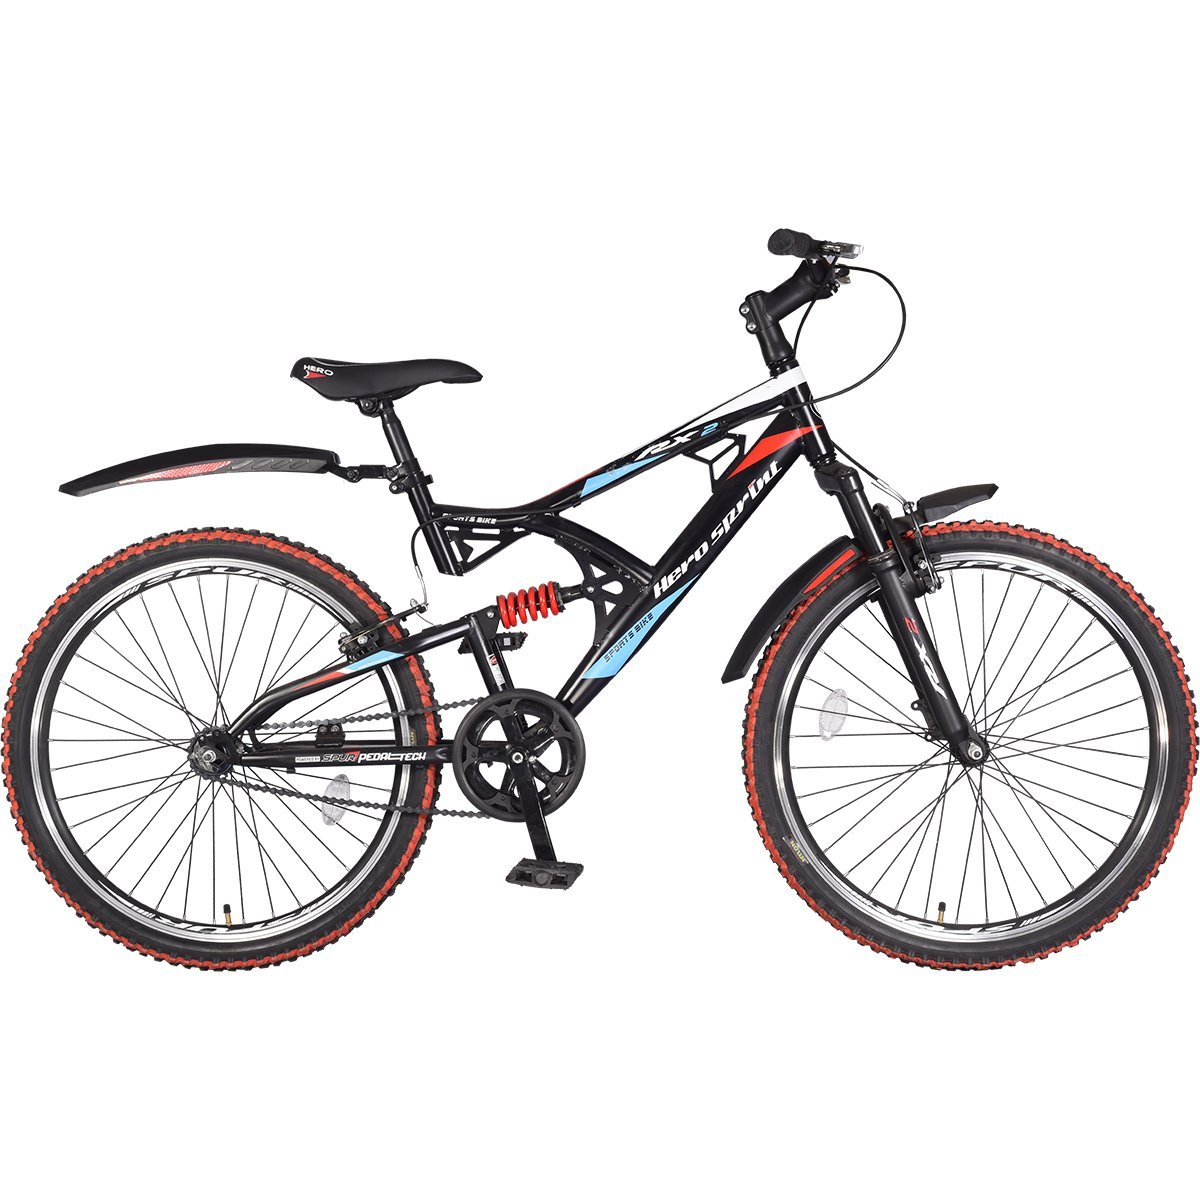 Hero Rx2 26t 21 Speed Sprint Cycle With Disc Brake Black Red Excell 200 Light Stand Single Without